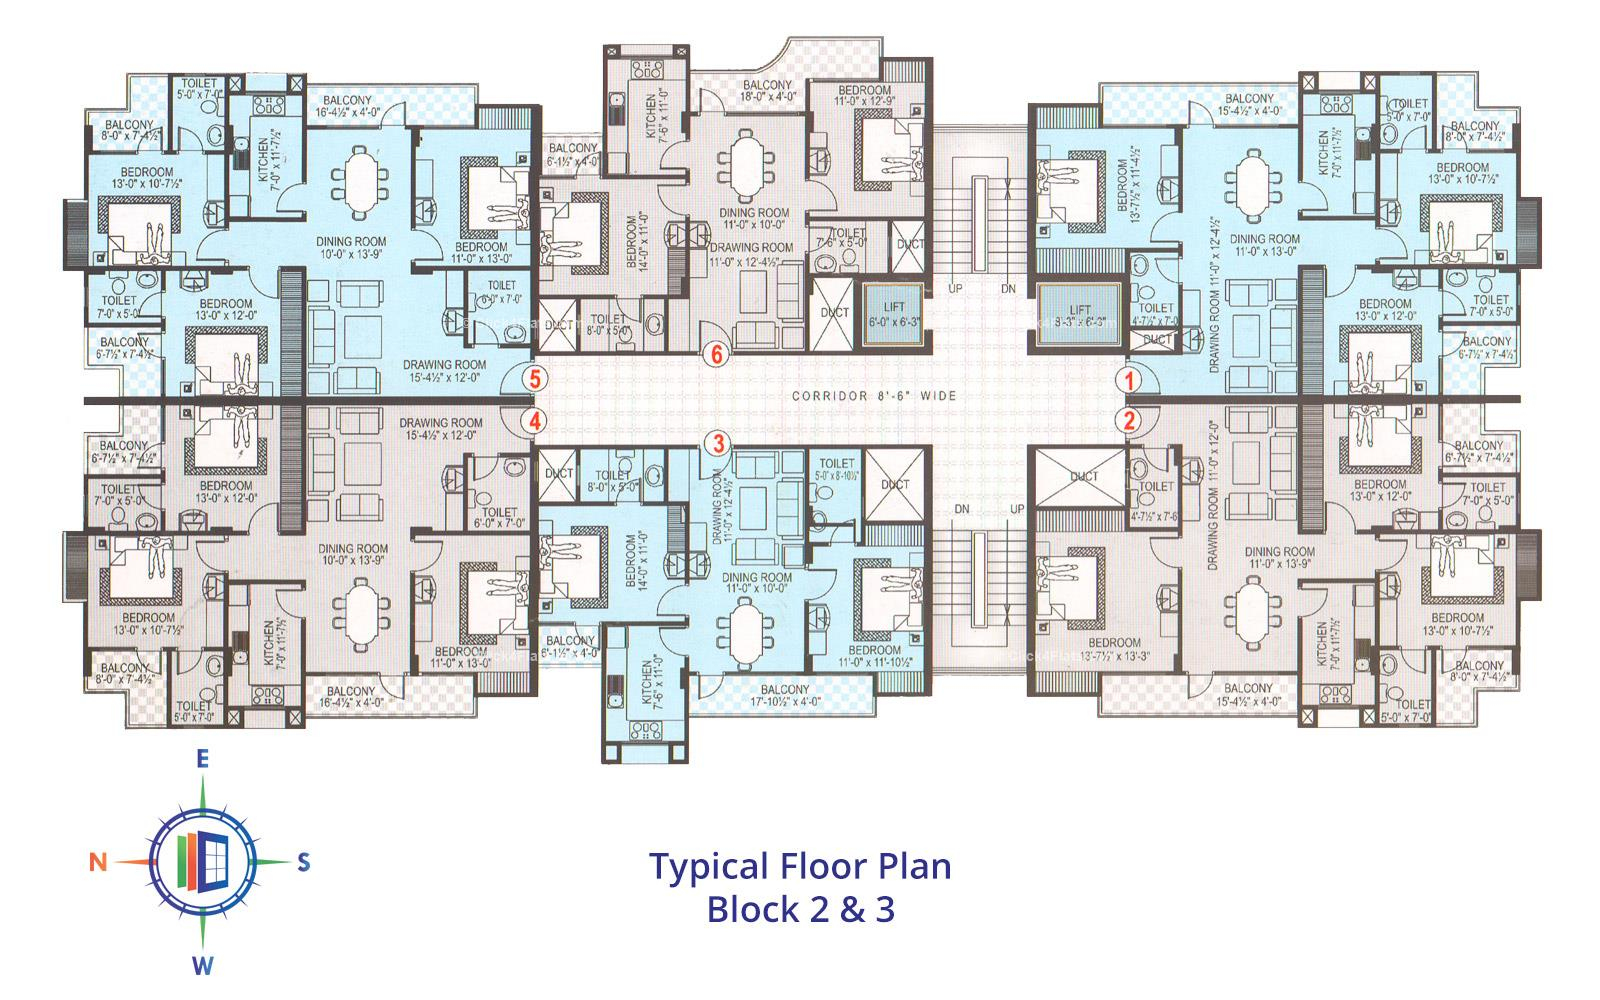 Samriddhi Residency Typical Floor Block 2nd & 3rd